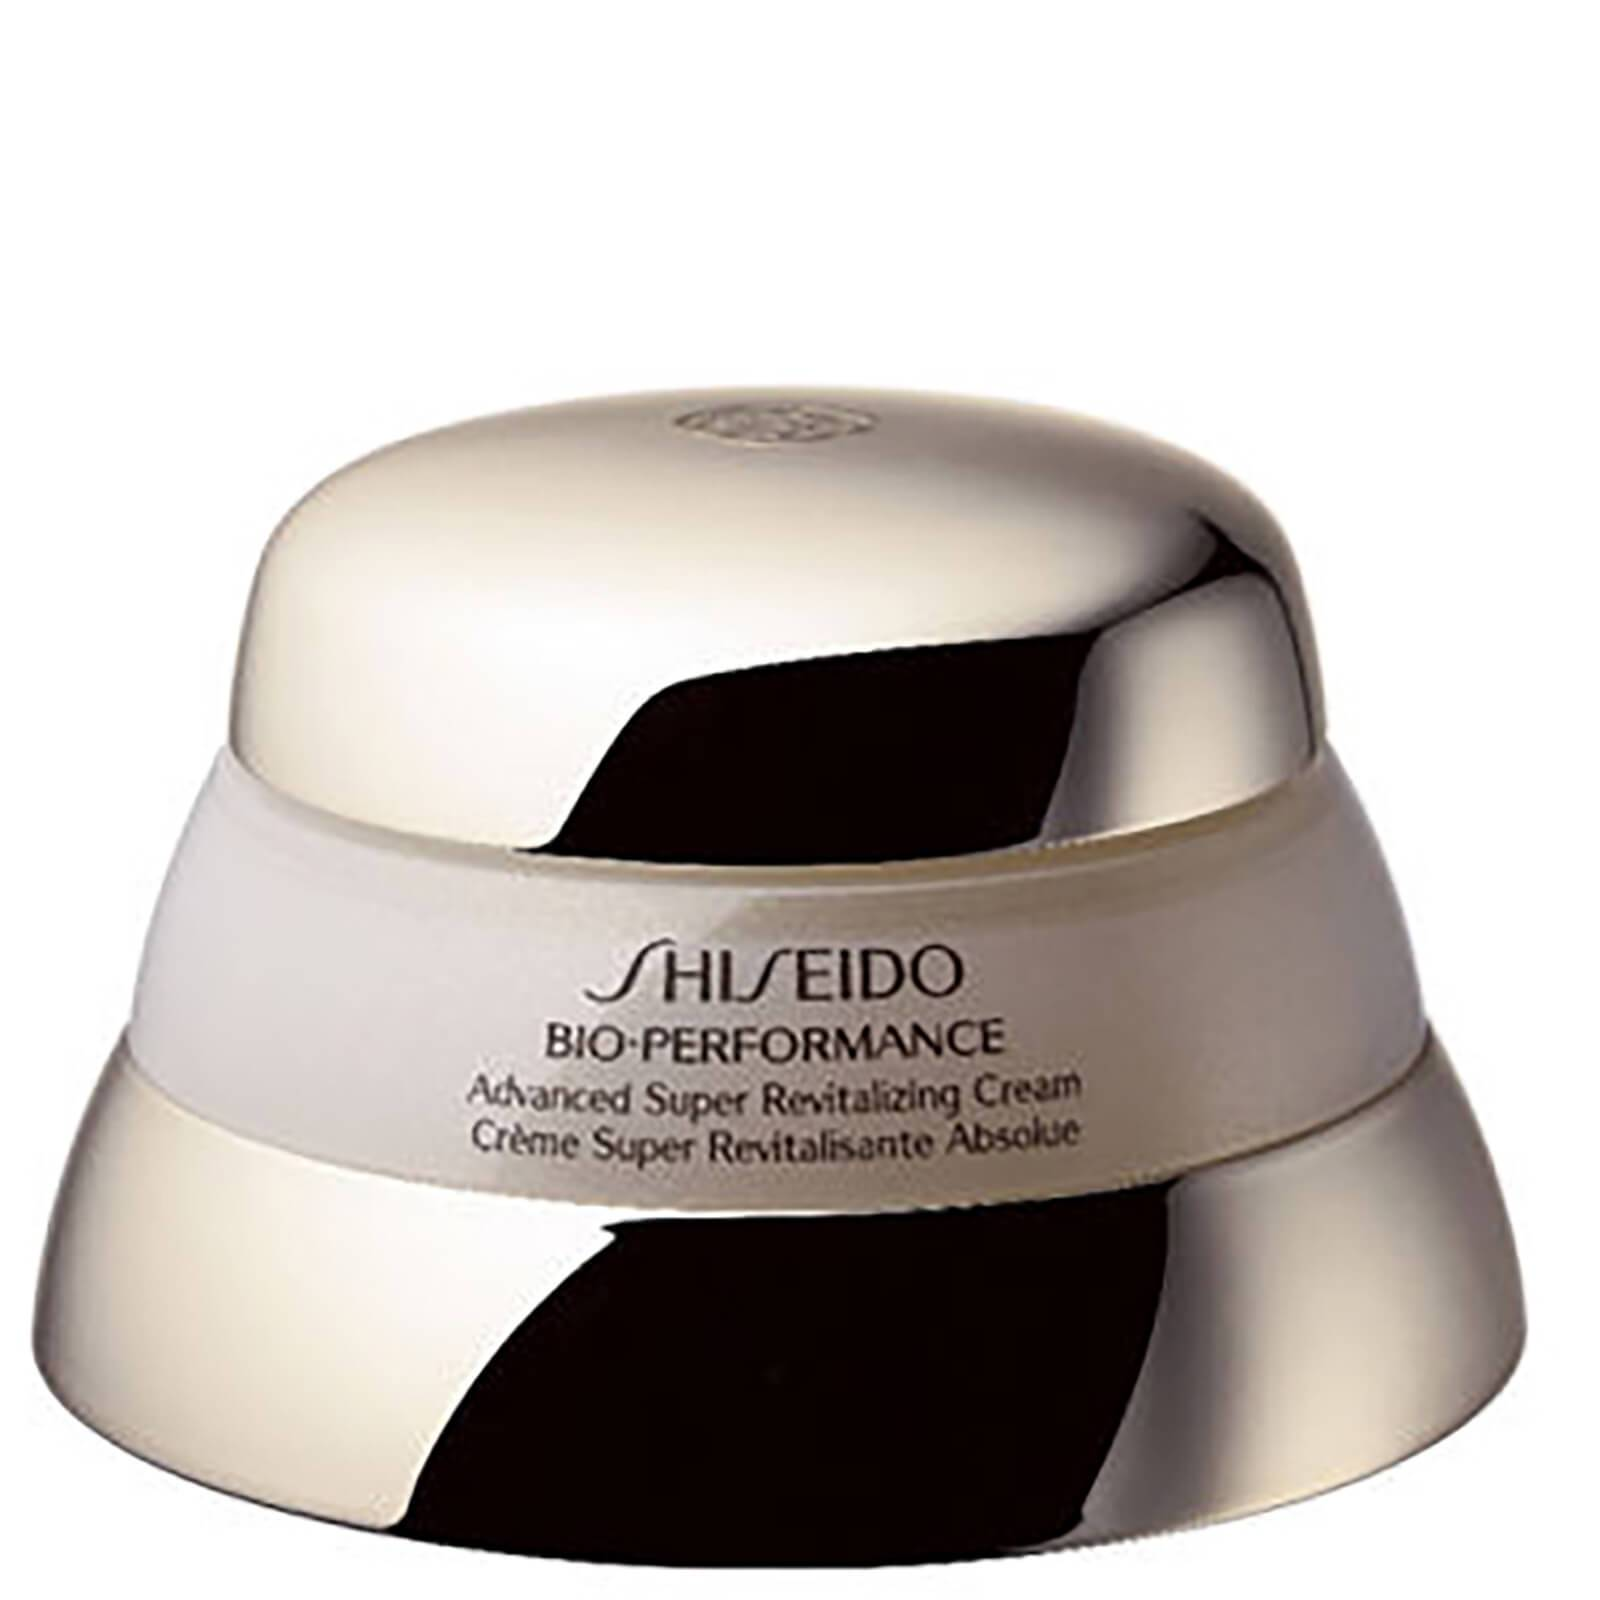 Shiseido BioPerformance Advanced Super Revitalizing Cream de Shiseido (50ml)